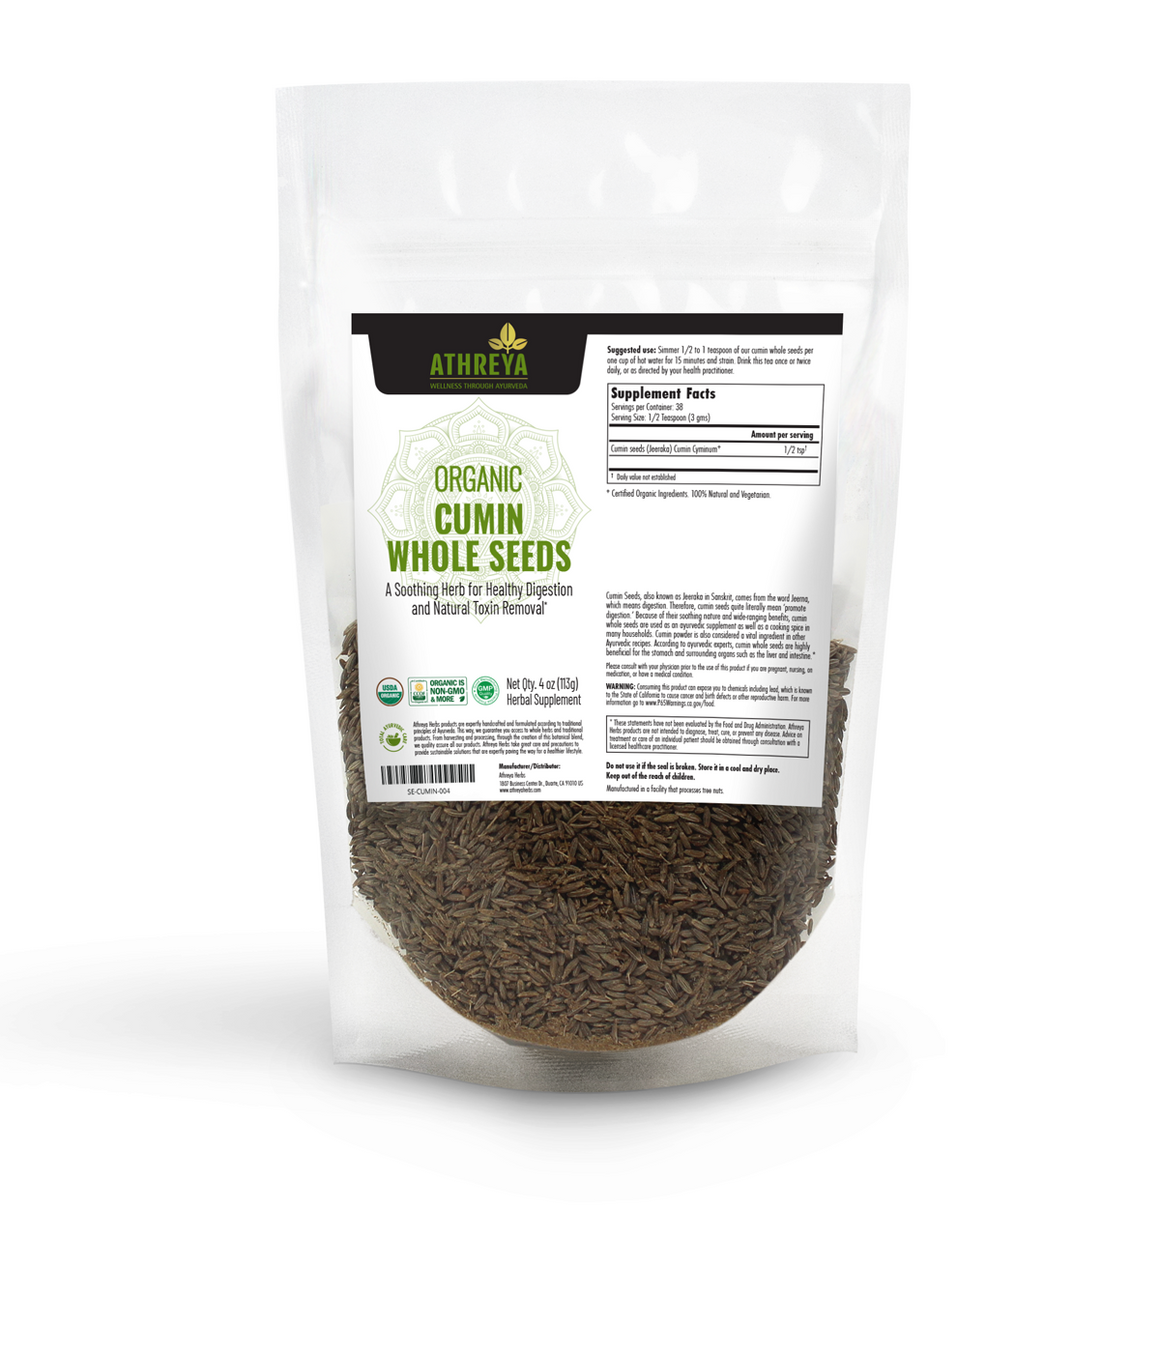 Organic Cumin Whole Seeds